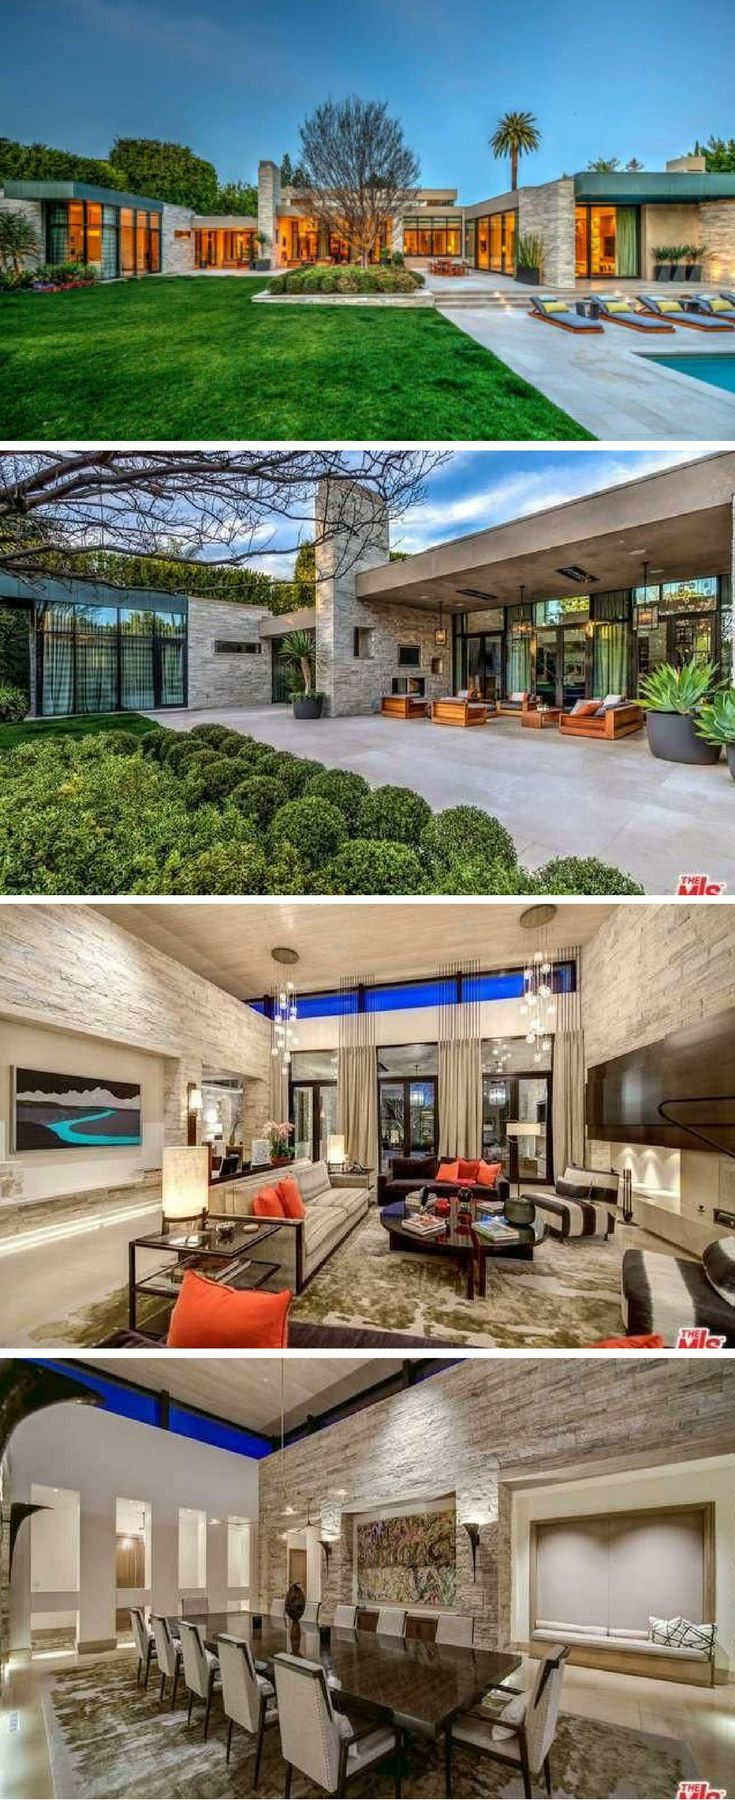 Best Luxury Homes Images On Pinterest Real Estates - Take look around luxurious property beverley hills